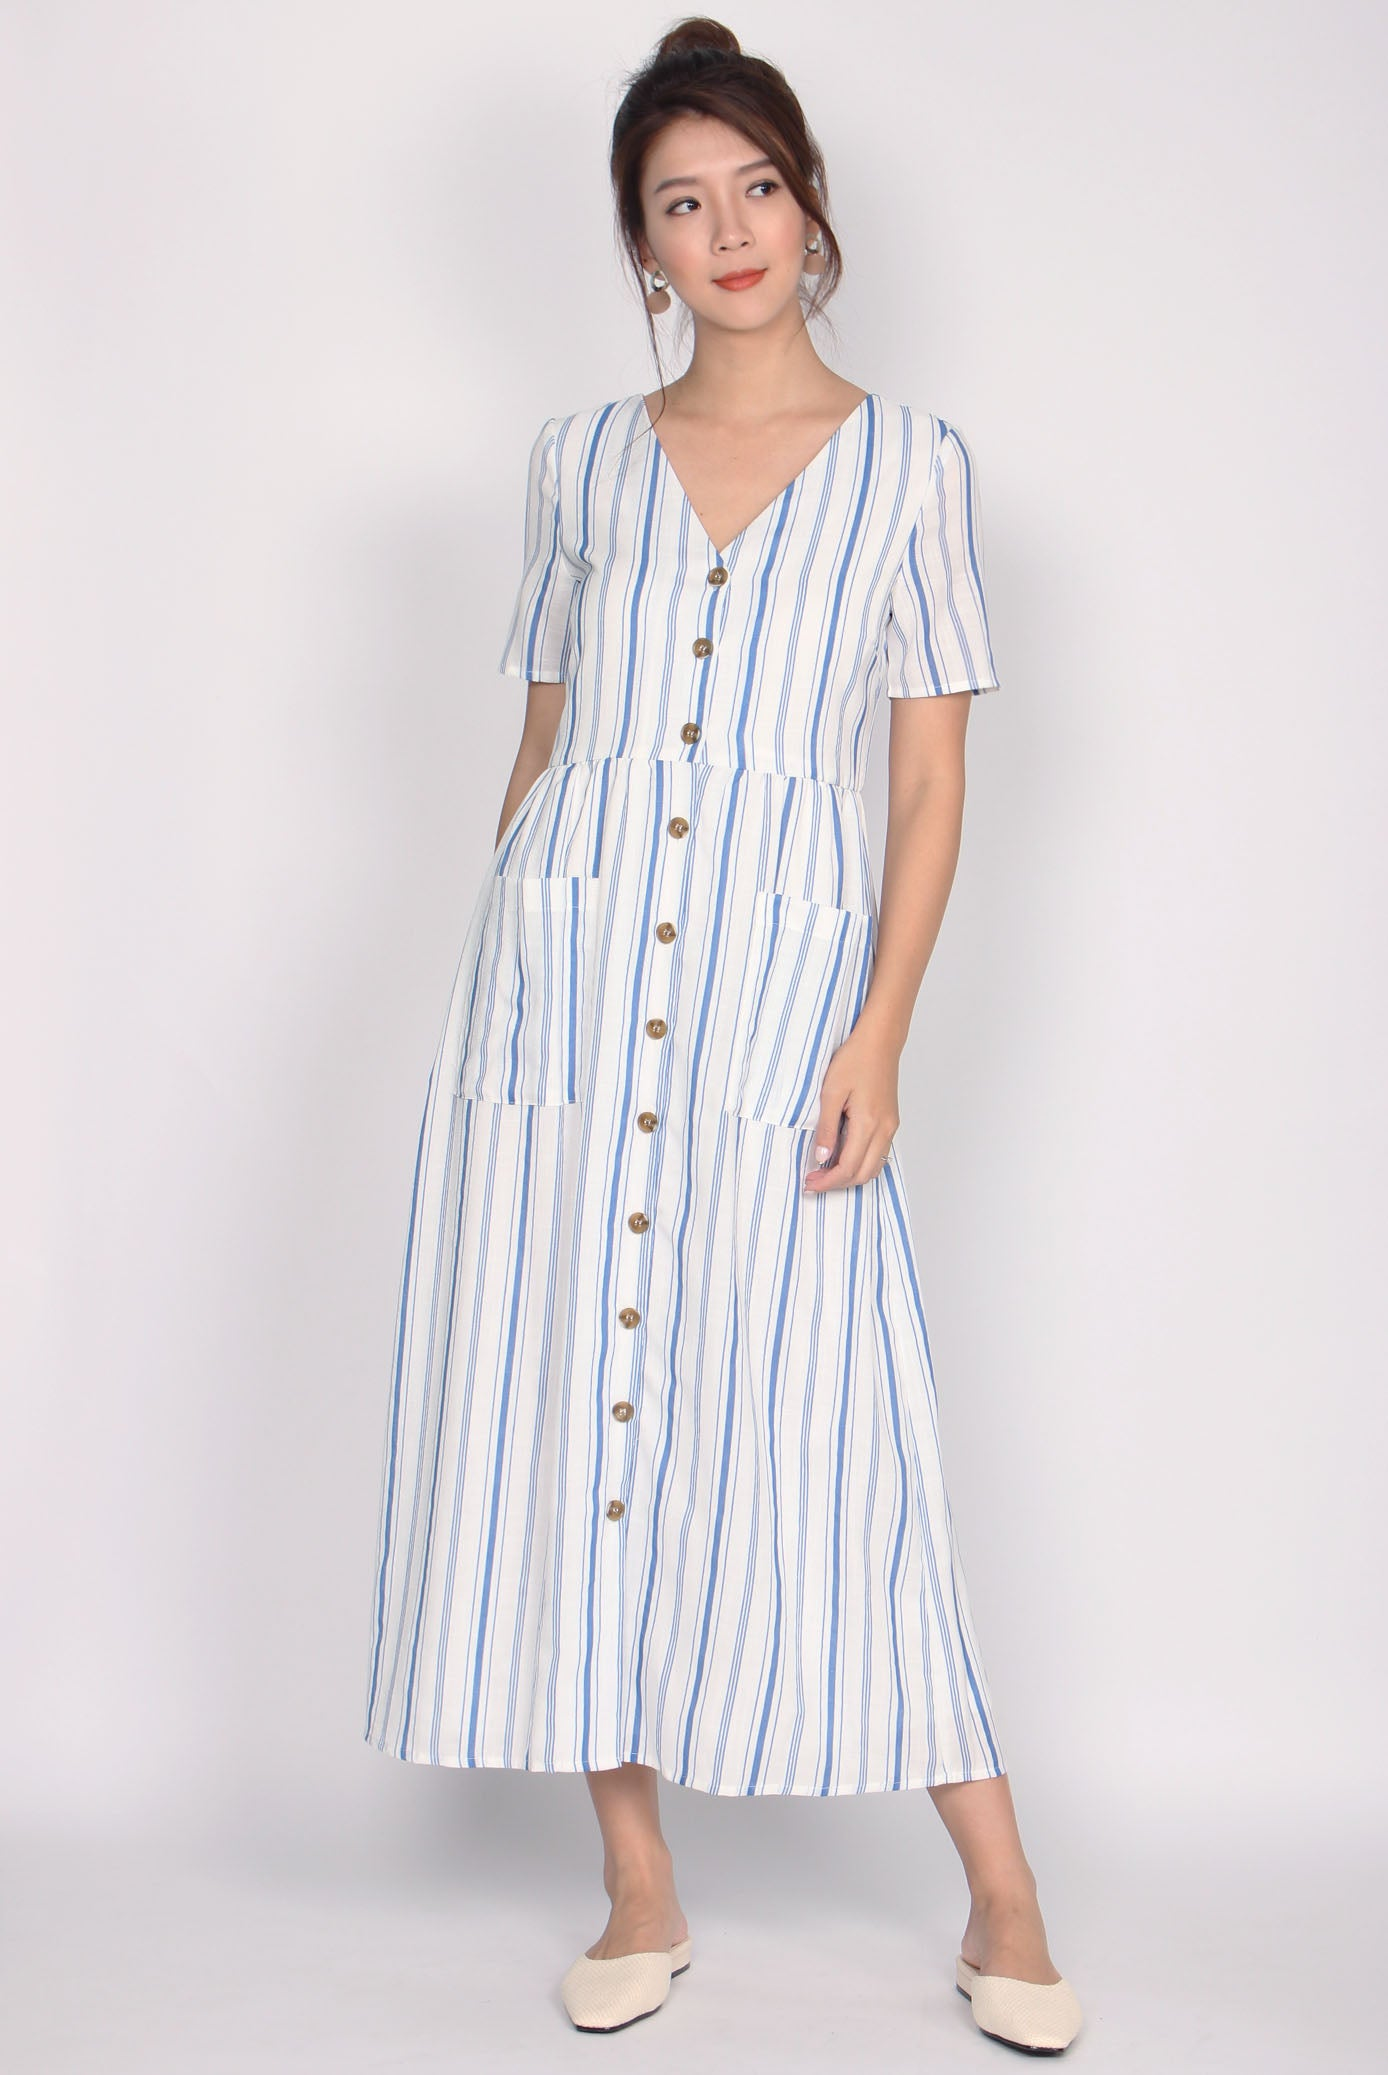 0aedc123e21 Blaire Buttons Down Pockets Dress In Blue Stripes – The Design Closets